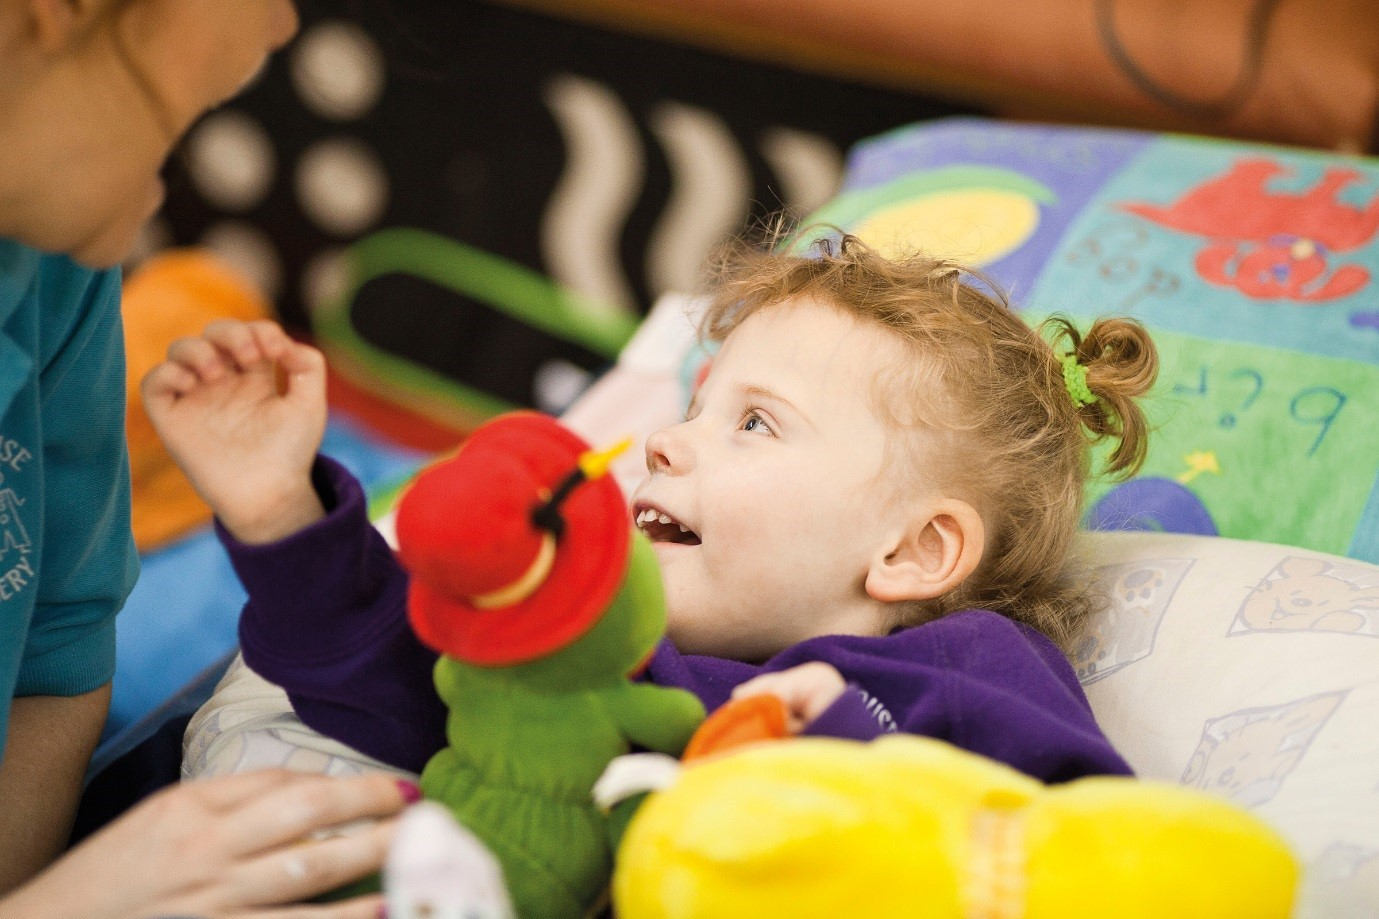 MENCAP - Supporting children with a learning disability right from the start